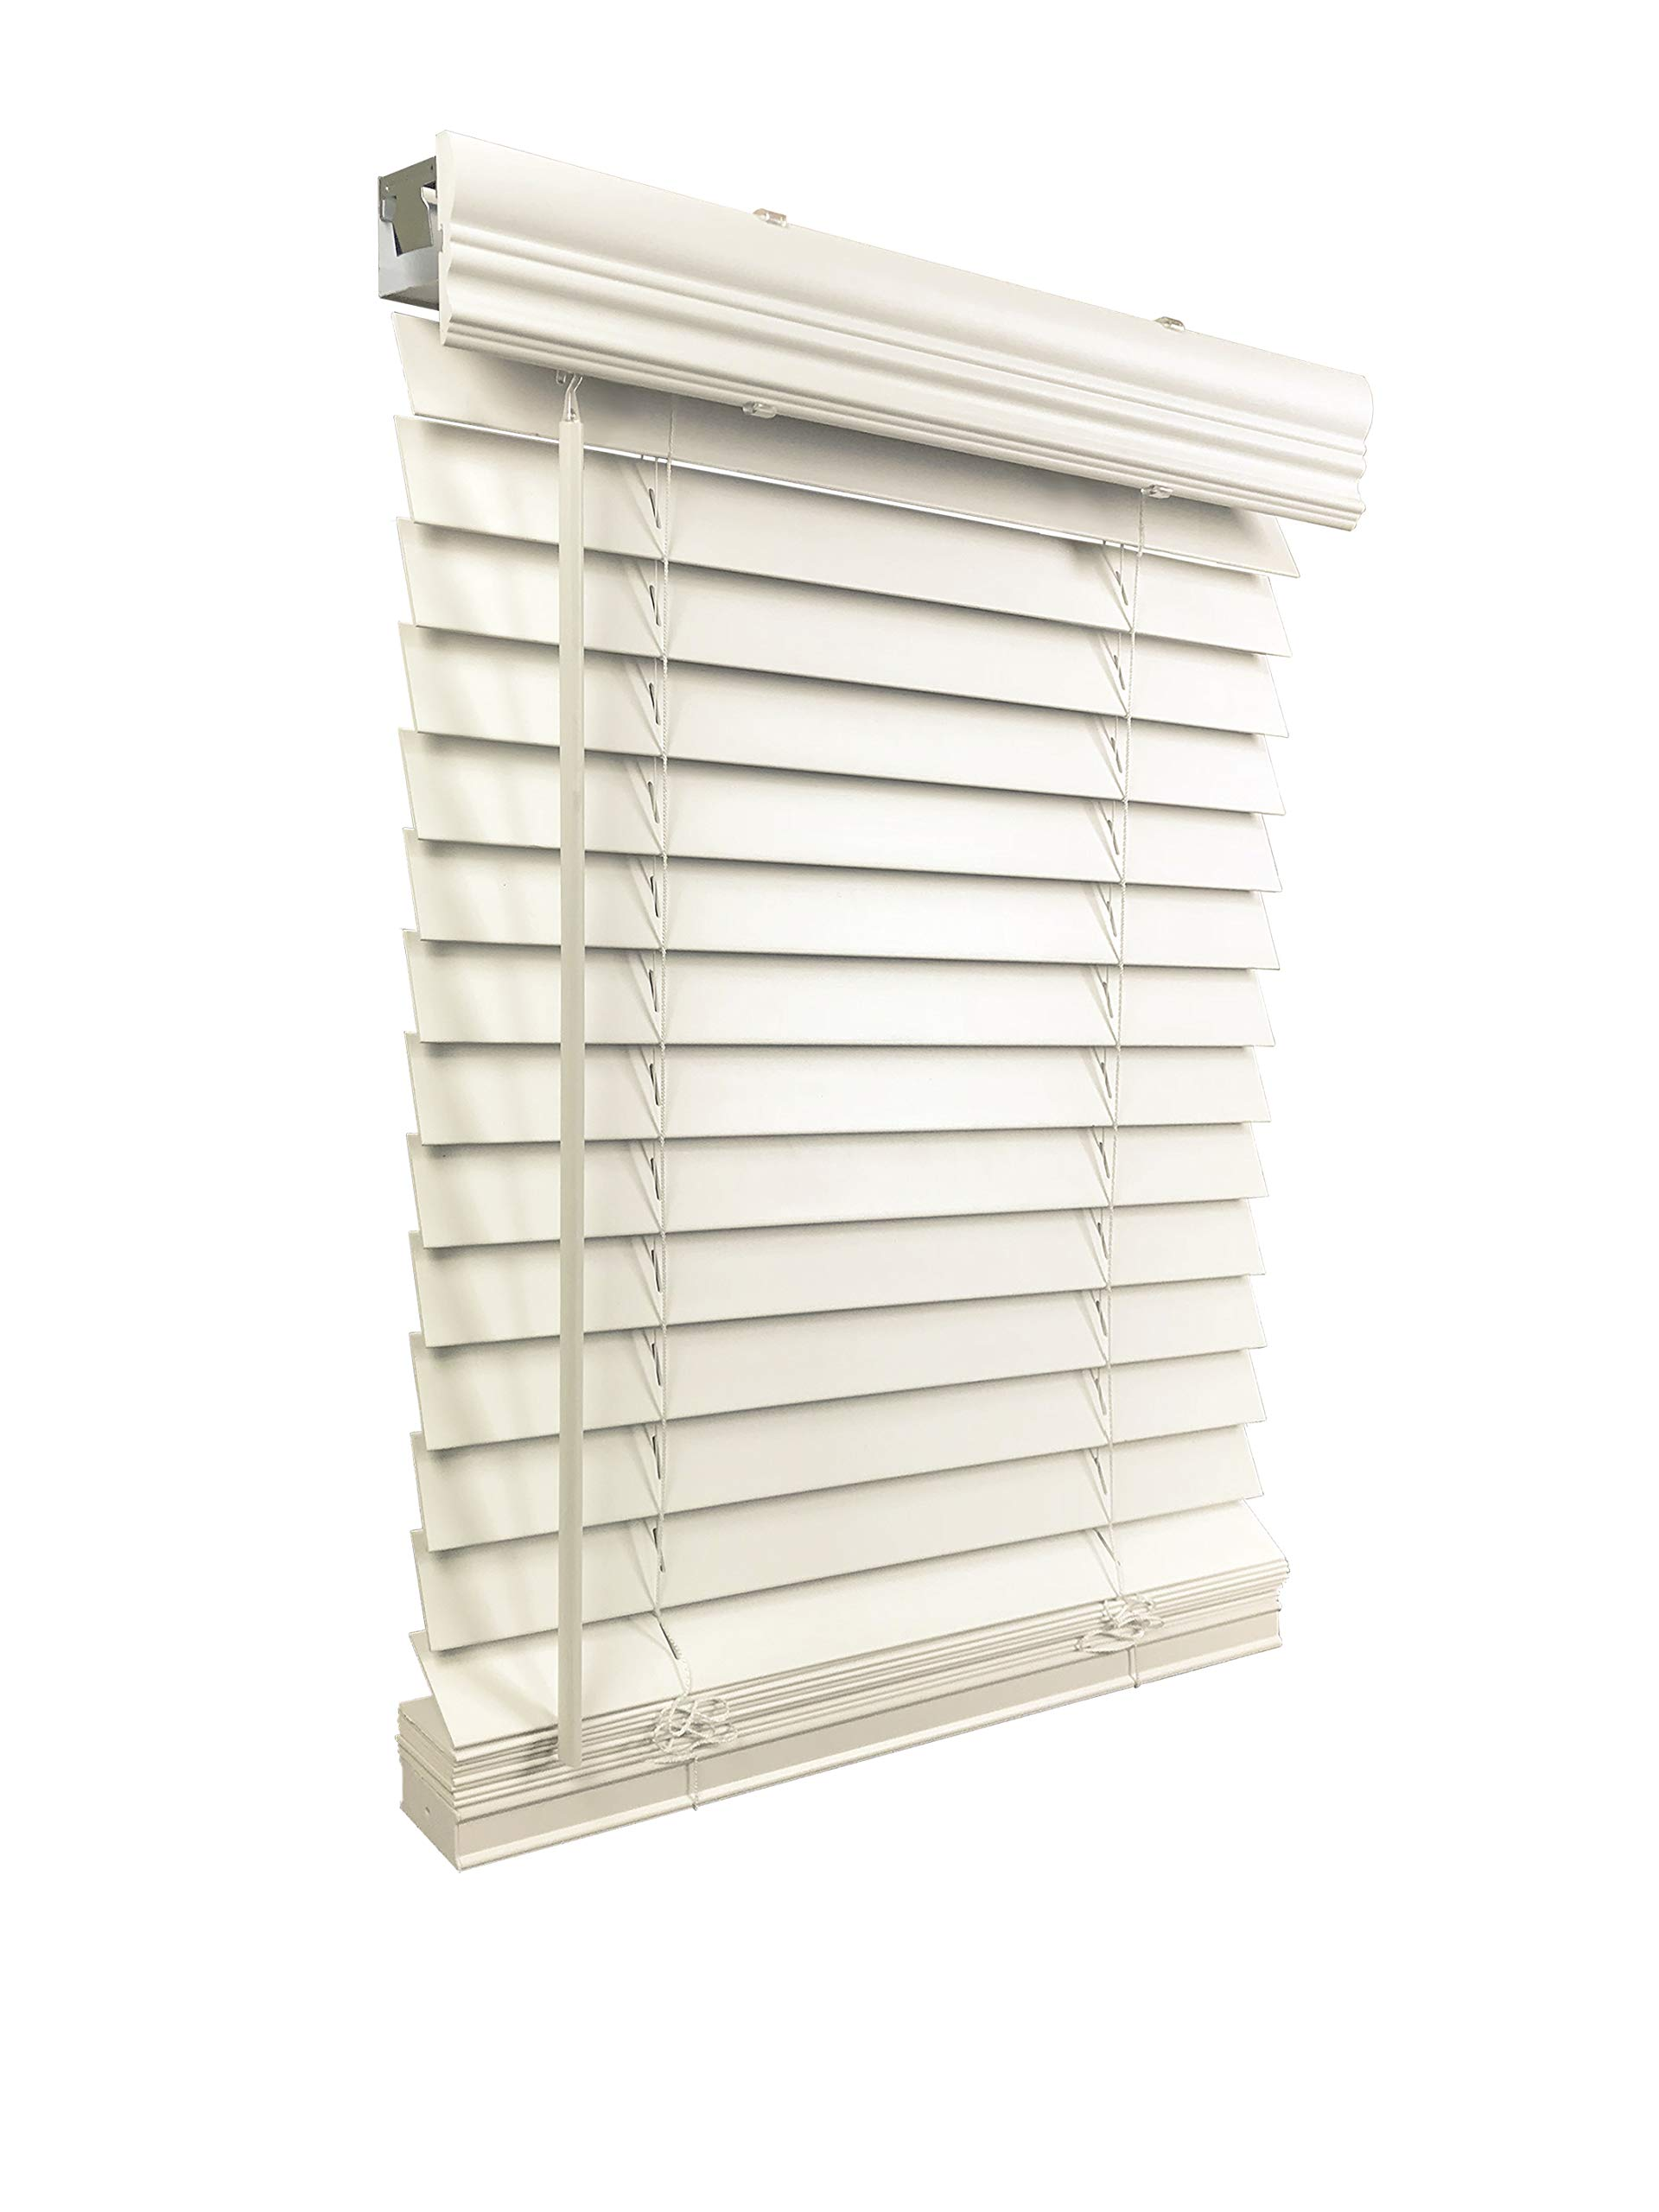 """CDM product US Window And Floor 2"""" Faux Wood 26.5"""" W x 48"""" H, Inside Mount Cordless Blinds 26.5 x 48 White big image"""